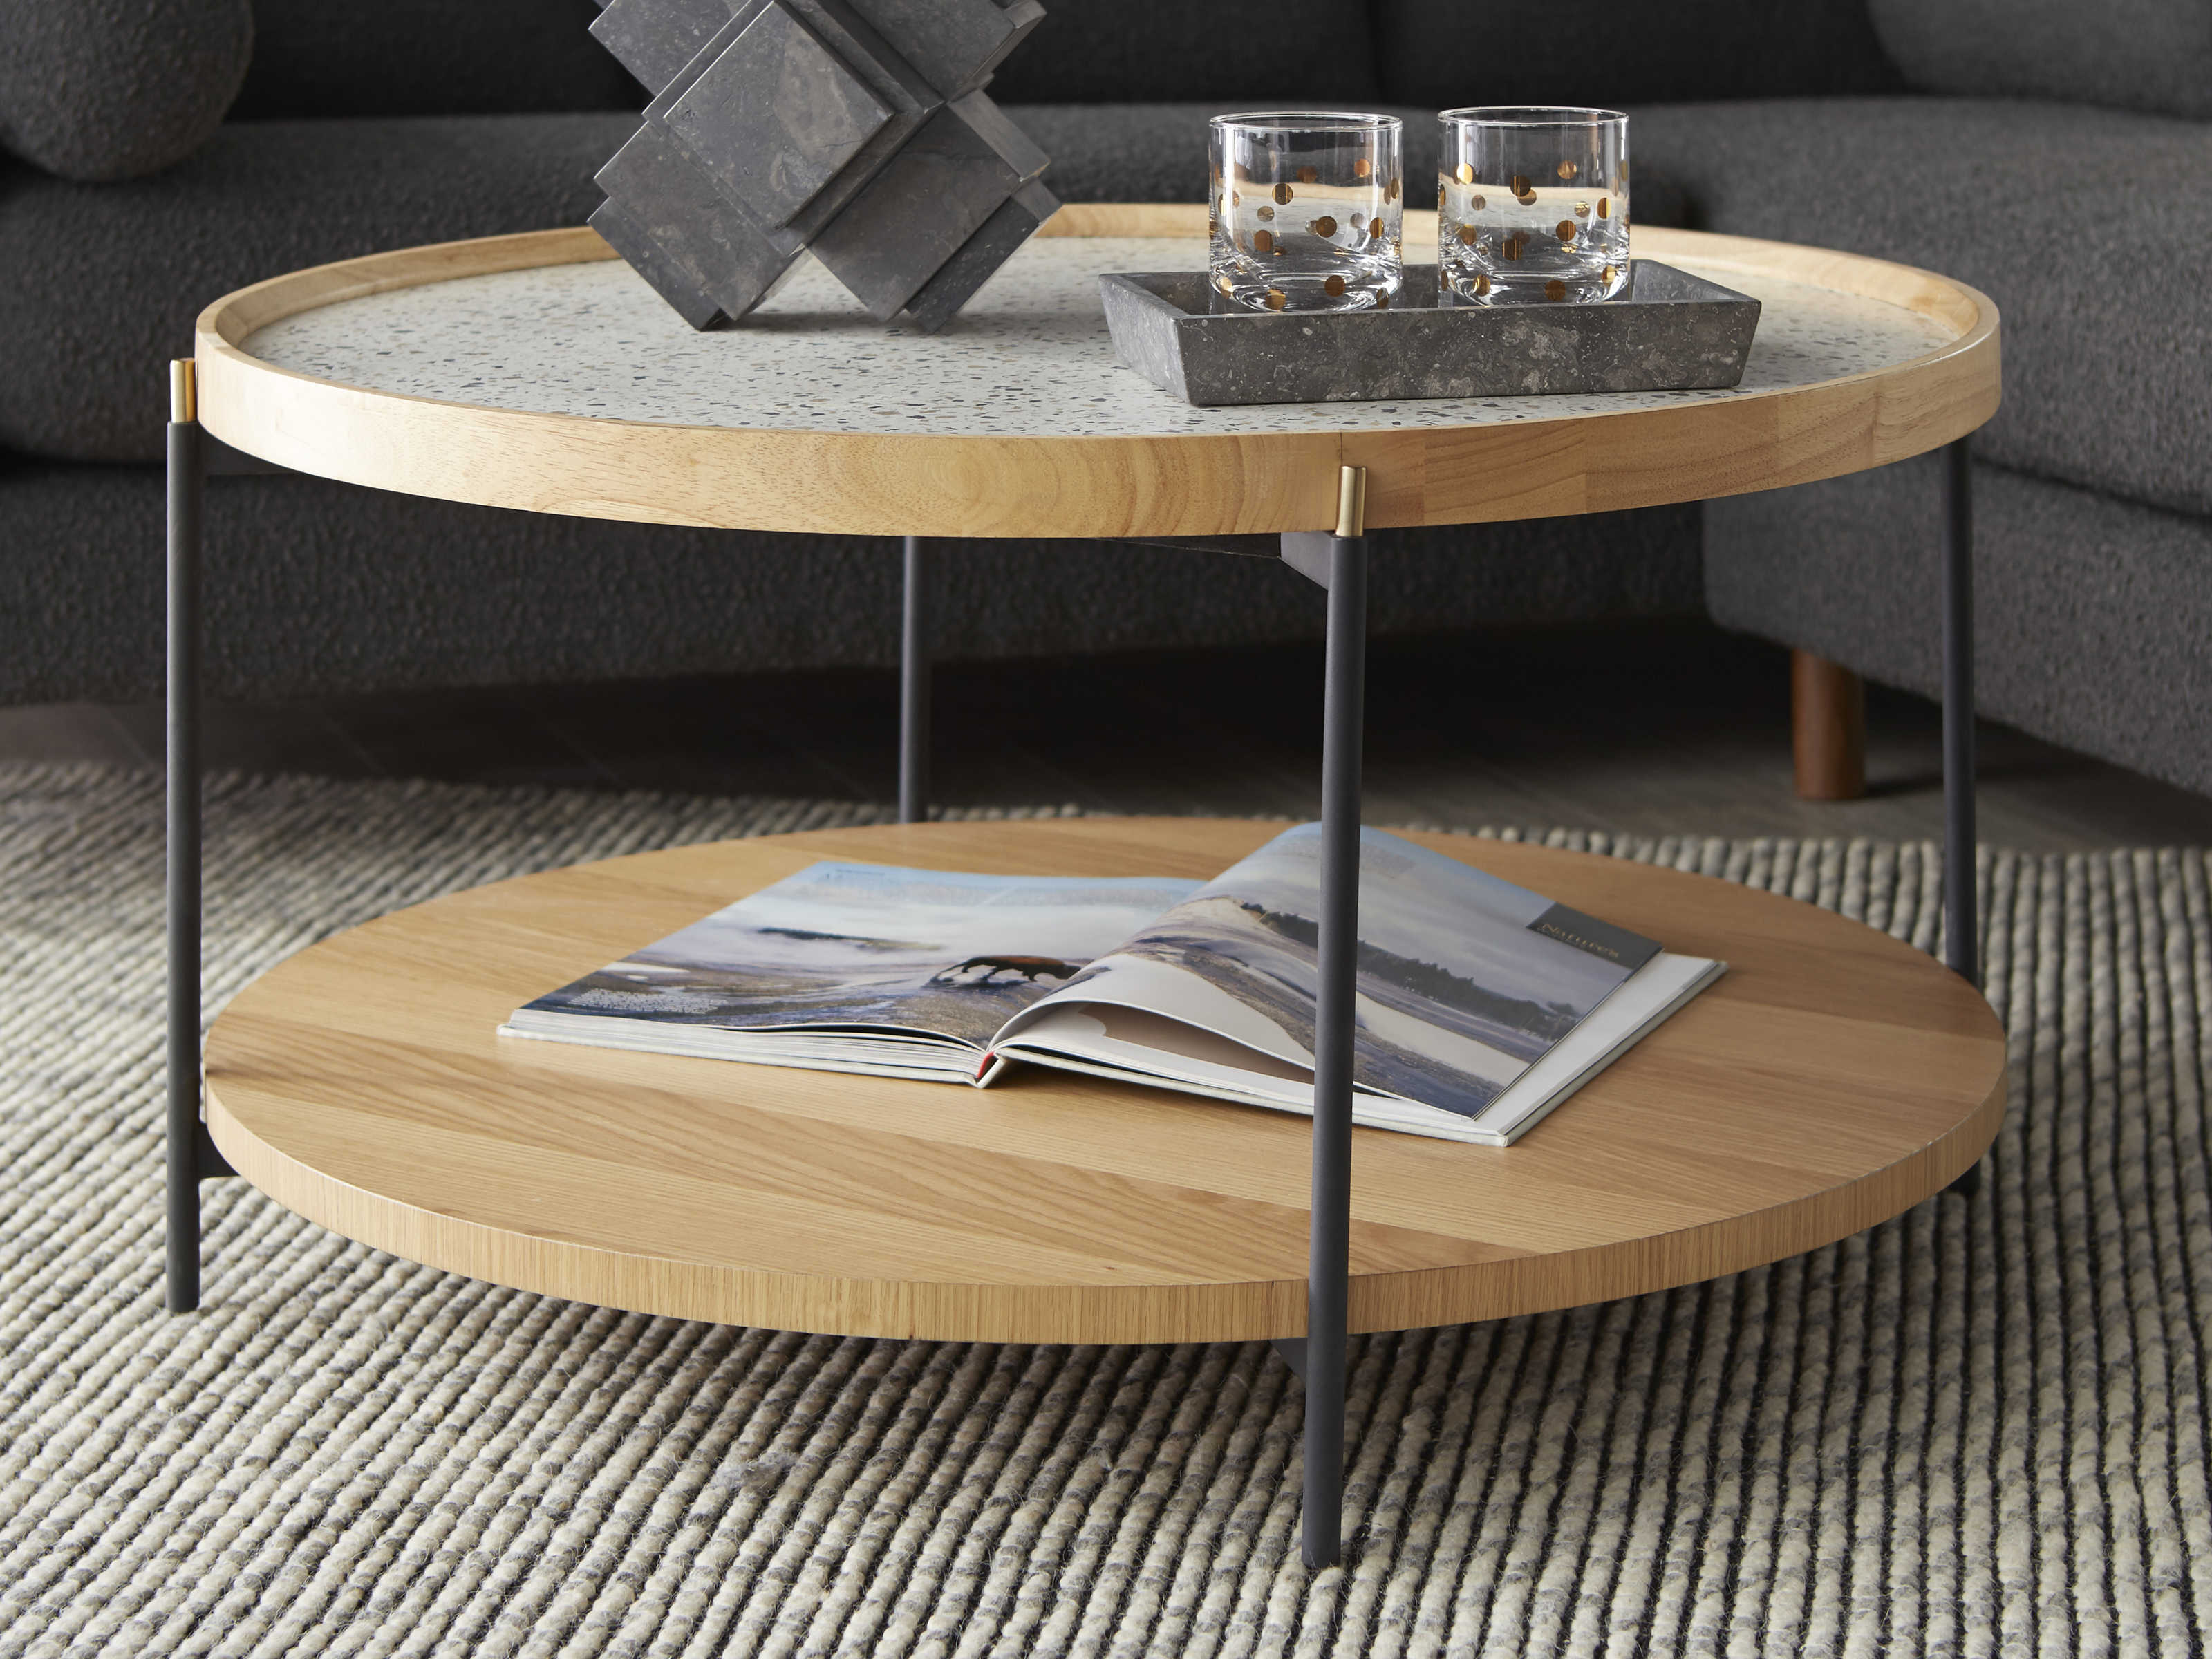 Bobby Berk For A R T Furniture Natural 36 Wide Round Coffee Table Bbb2393022301 [ 2400 x 3200 Pixel ]